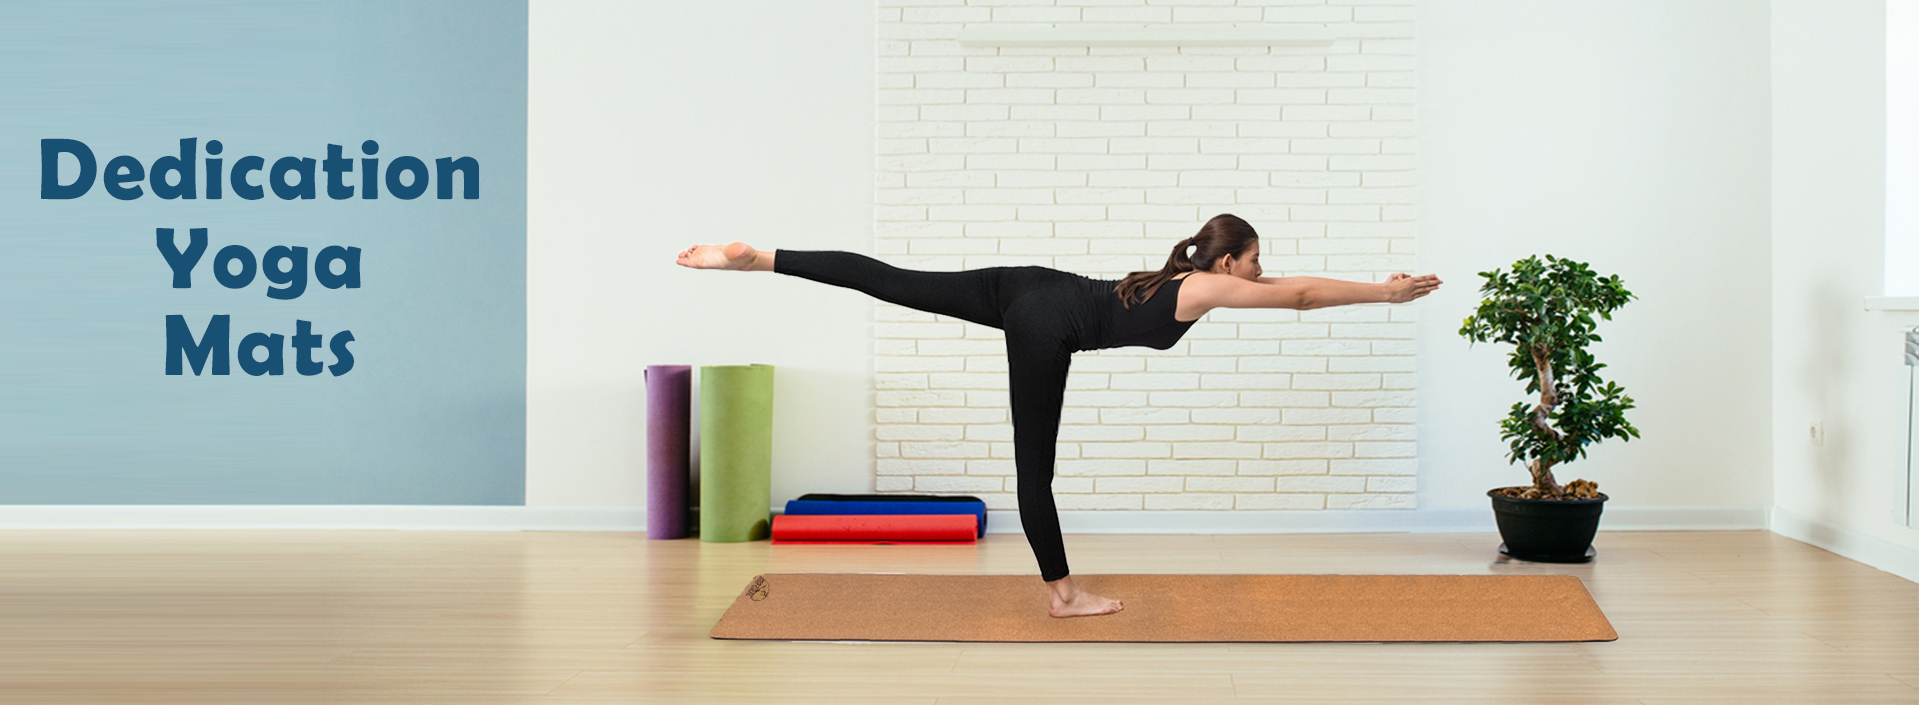 Affordable yoga mat suppliers in toronto